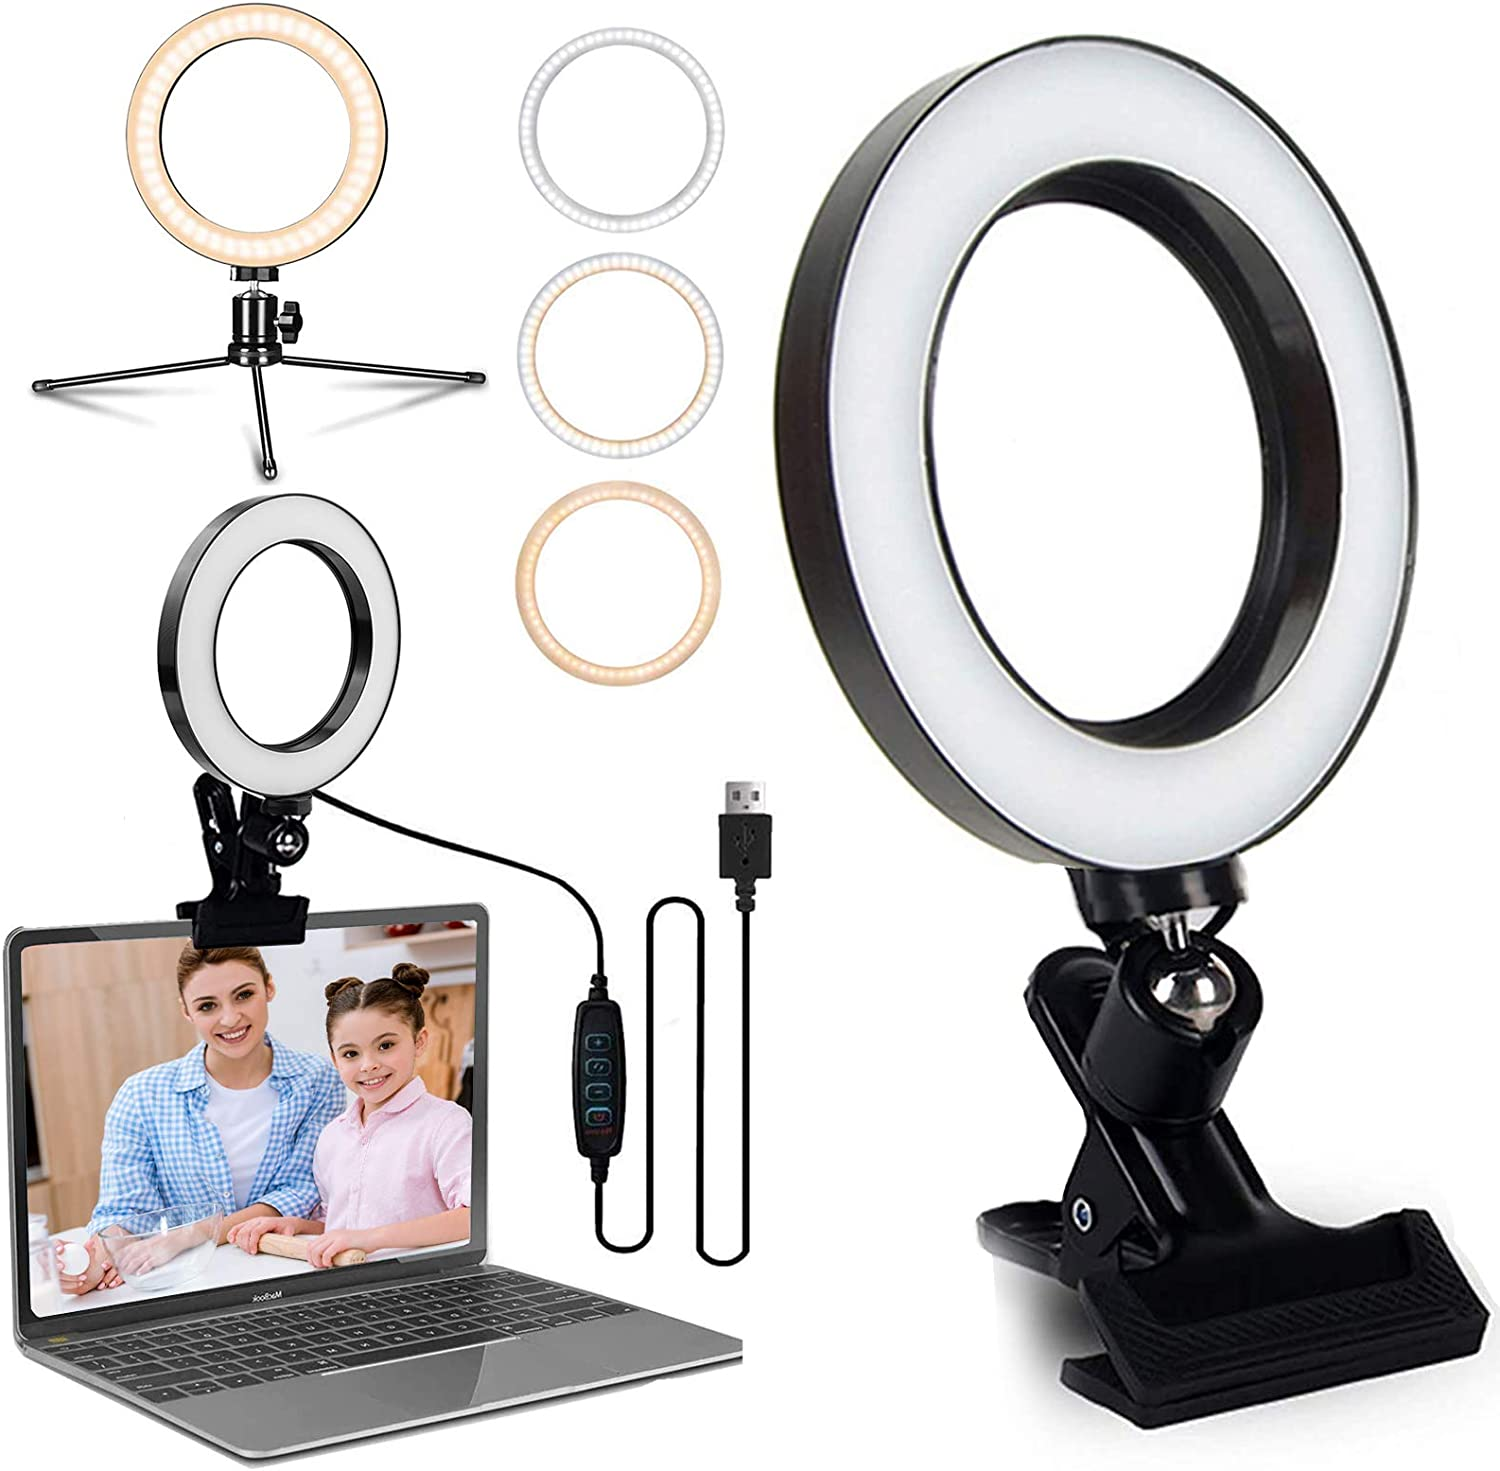 6.2'' LED Ring Light for Computer Laptop Video Conference Lighting with Clip Clamp Mount/Desk/Bed/Office Tripod Stand Selfie Lights for Zoom Meeting, Live Stream/Makeup/YouTube/TIKTok